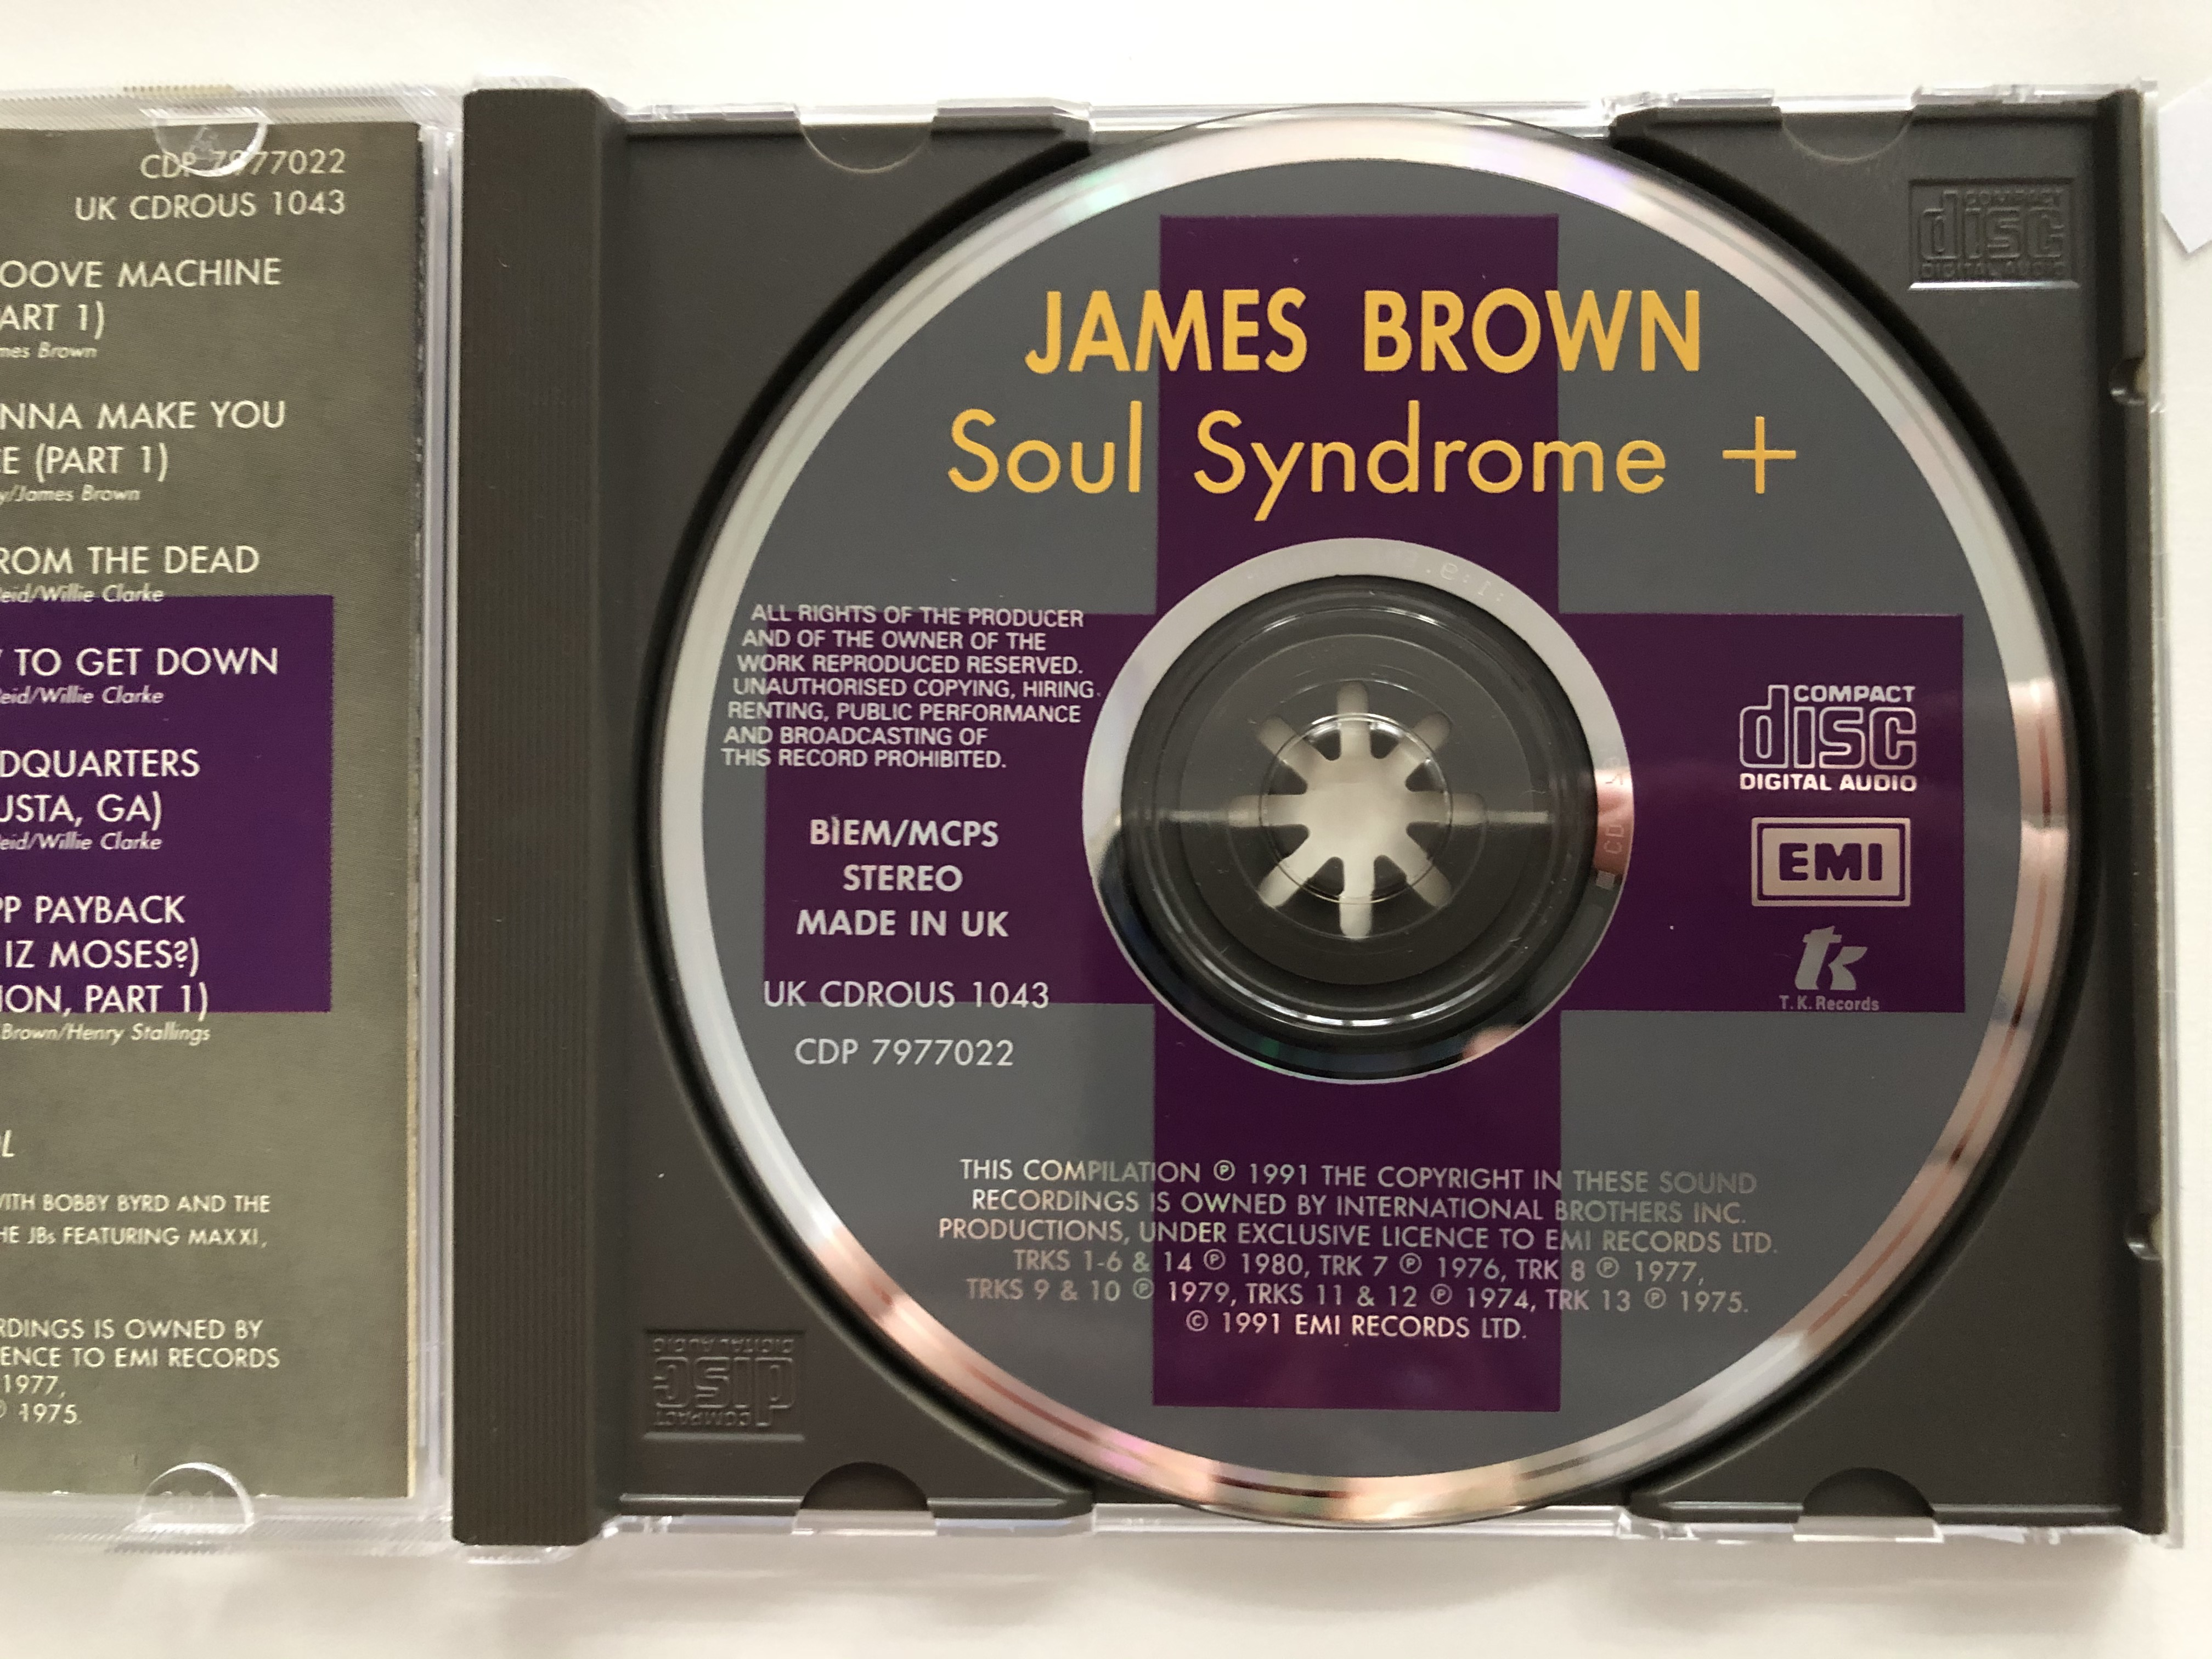 james-brown-soul-syndrome-t.k.-records-audio-cd-1991-cdp-7977022-4-.jpg